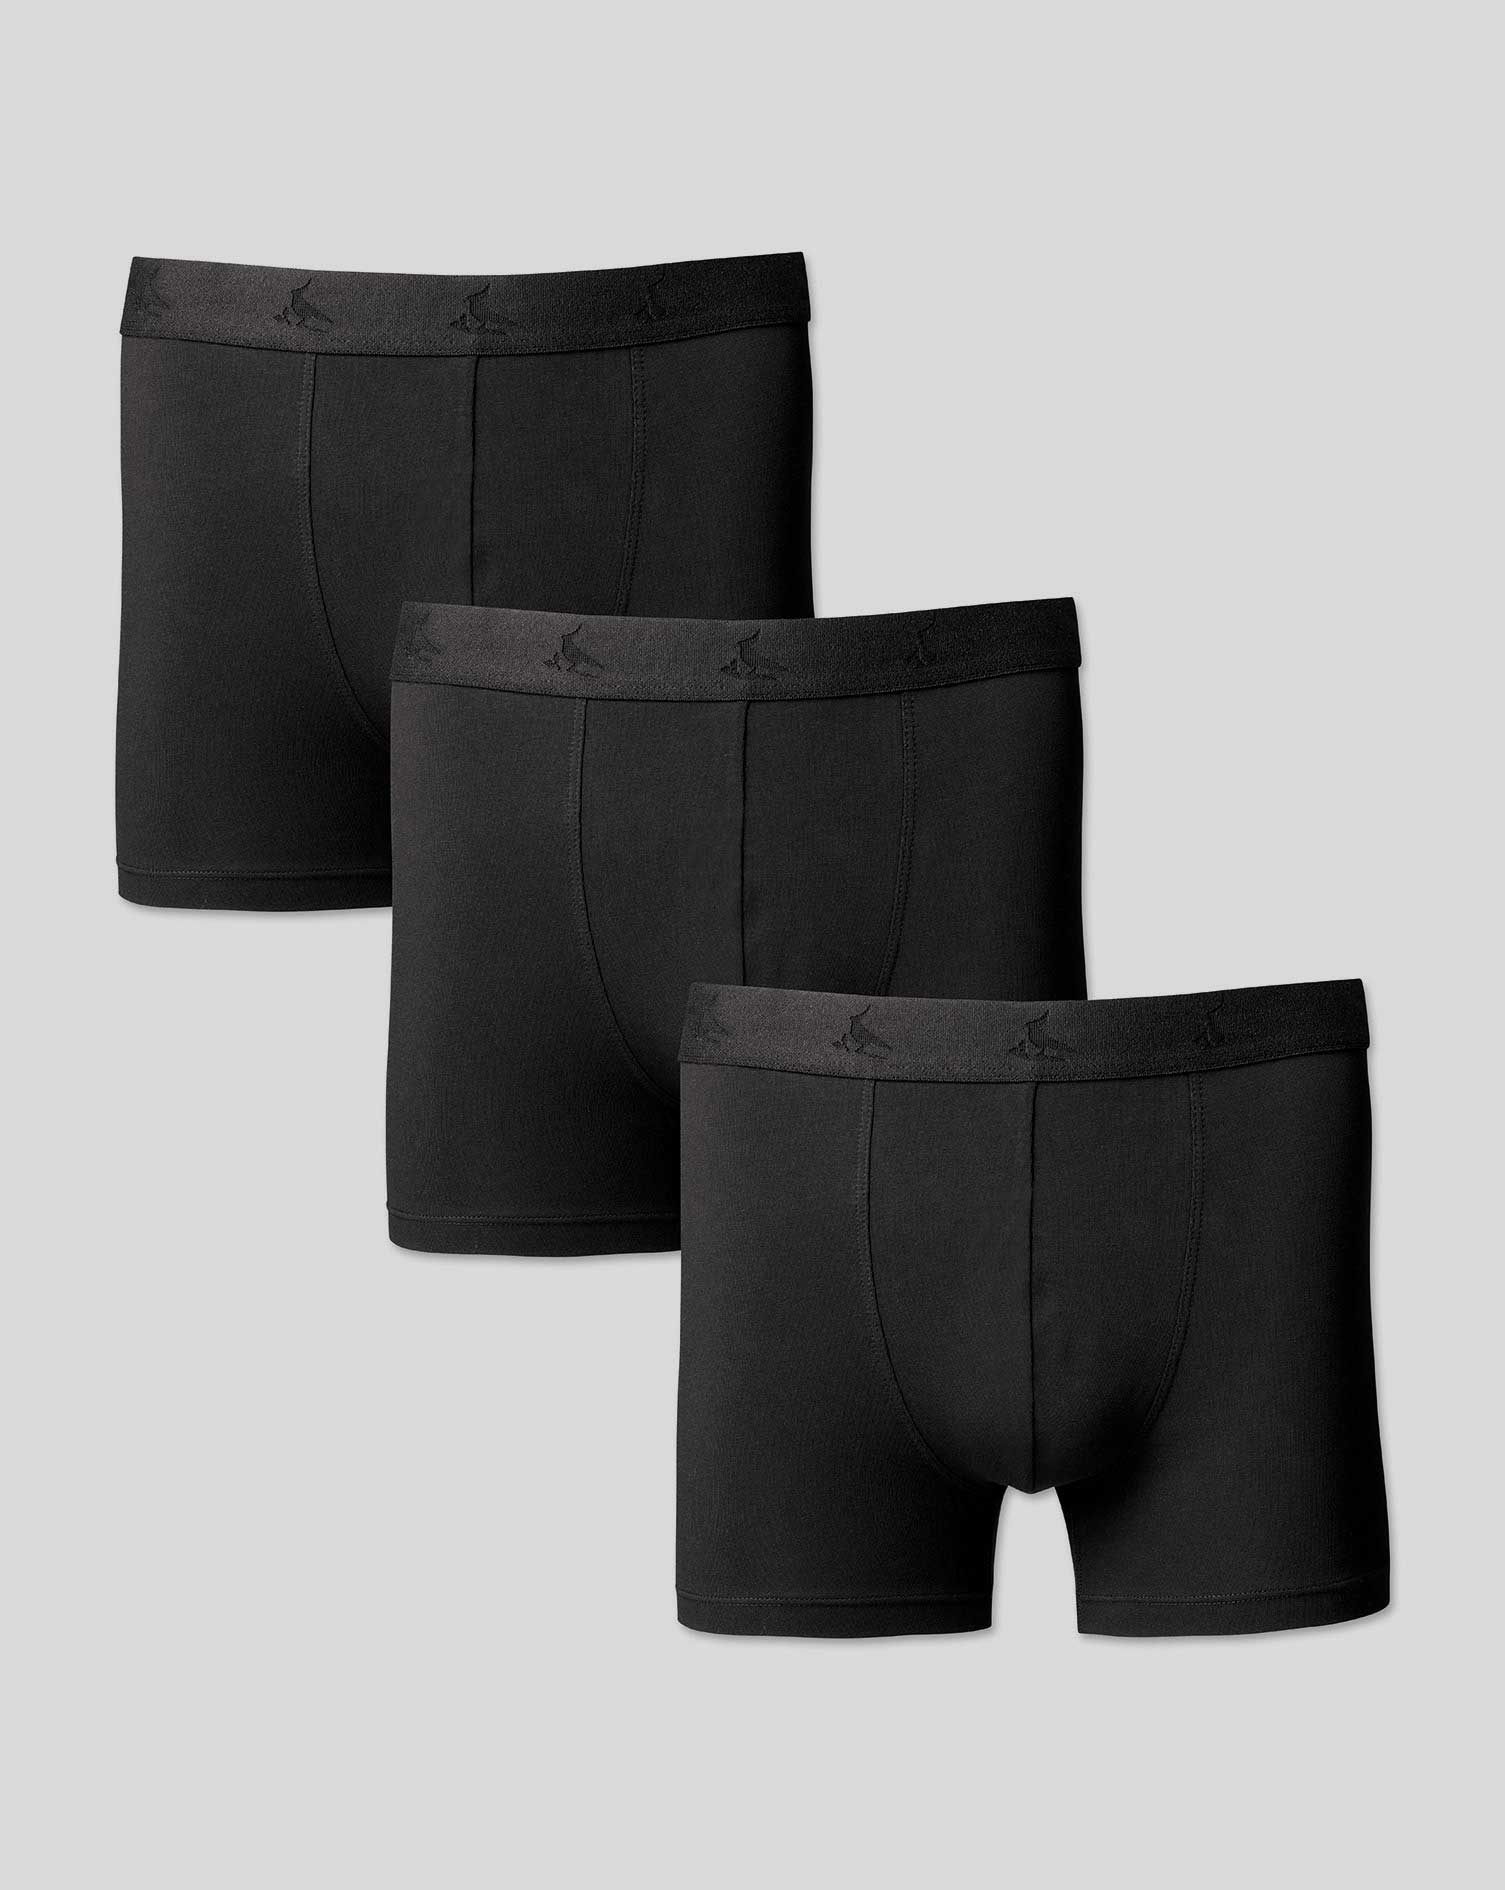 Image of Charles Tyrwhitt 3 Pack Cotton Stretch Jersey Trunks - Black Size Large by Charles Tyrwhitt